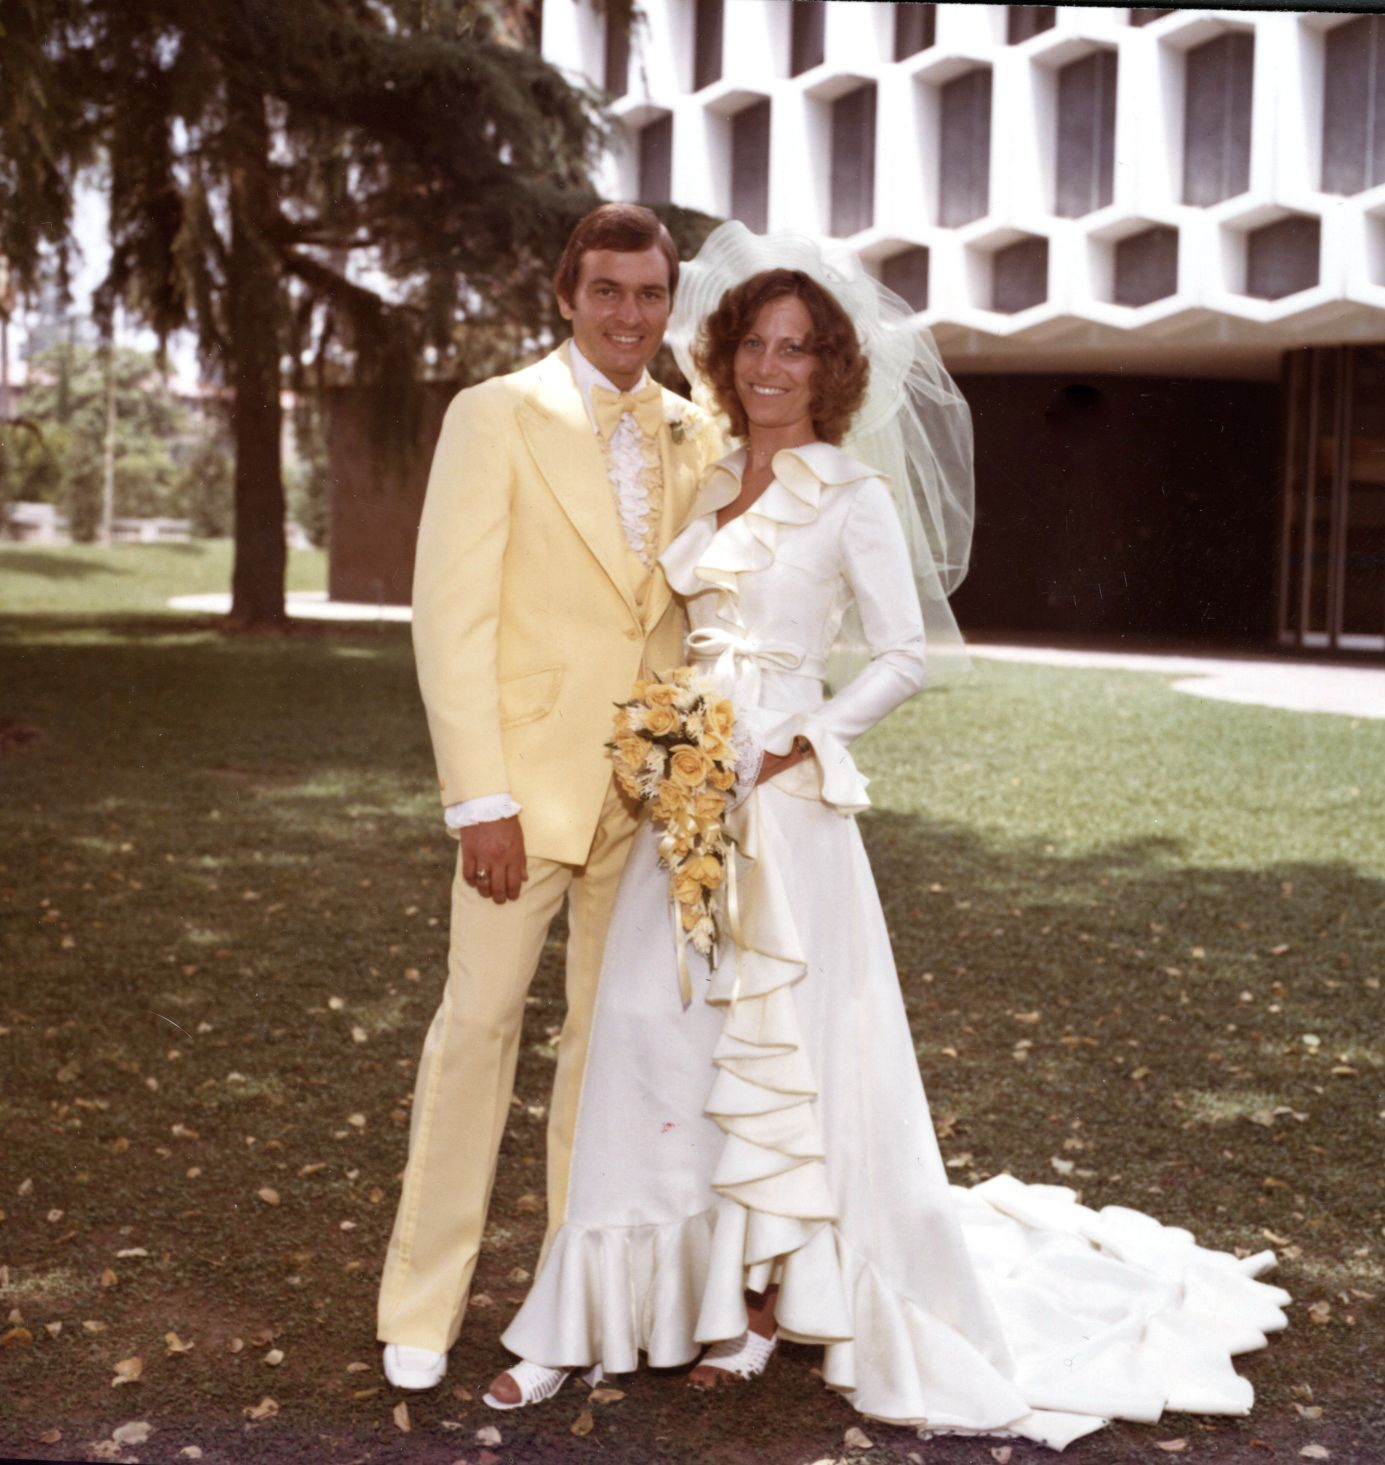 Wow, a man in a pastel yellow tux only in 1975